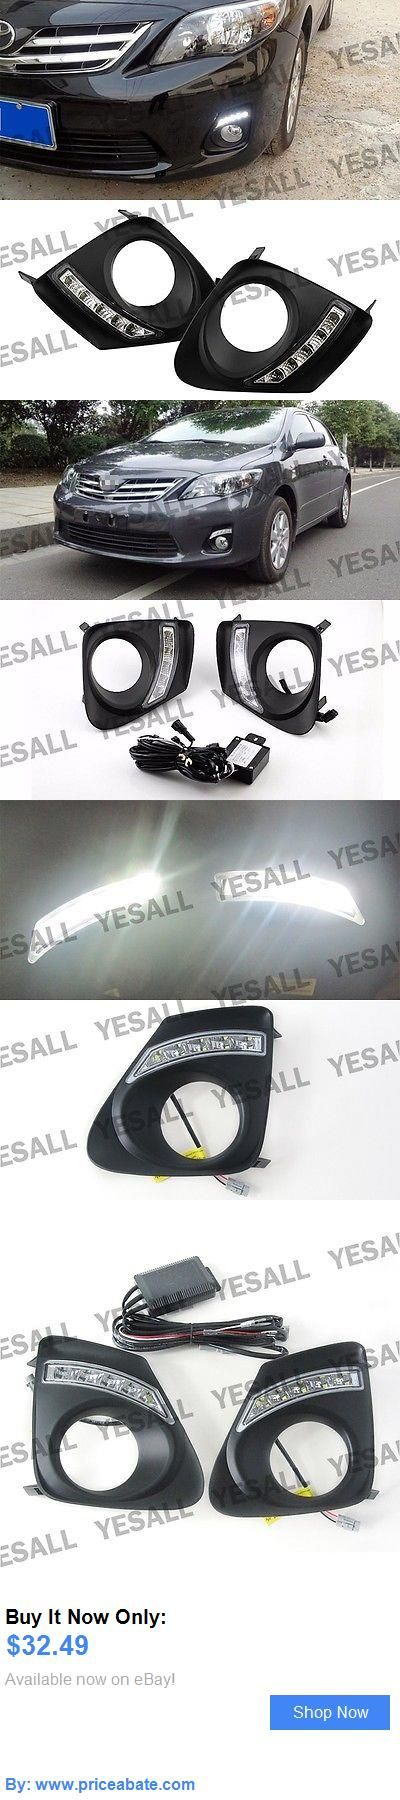 Motors Parts And Accessories: 2X White Led Daytime Run Lights Drl Drive Fog For Toyota Corolla Altis 2010-2013 BUY IT NOW ONLY: $32.49 #priceabateMotorsPartsAndAccessories OR #priceabate